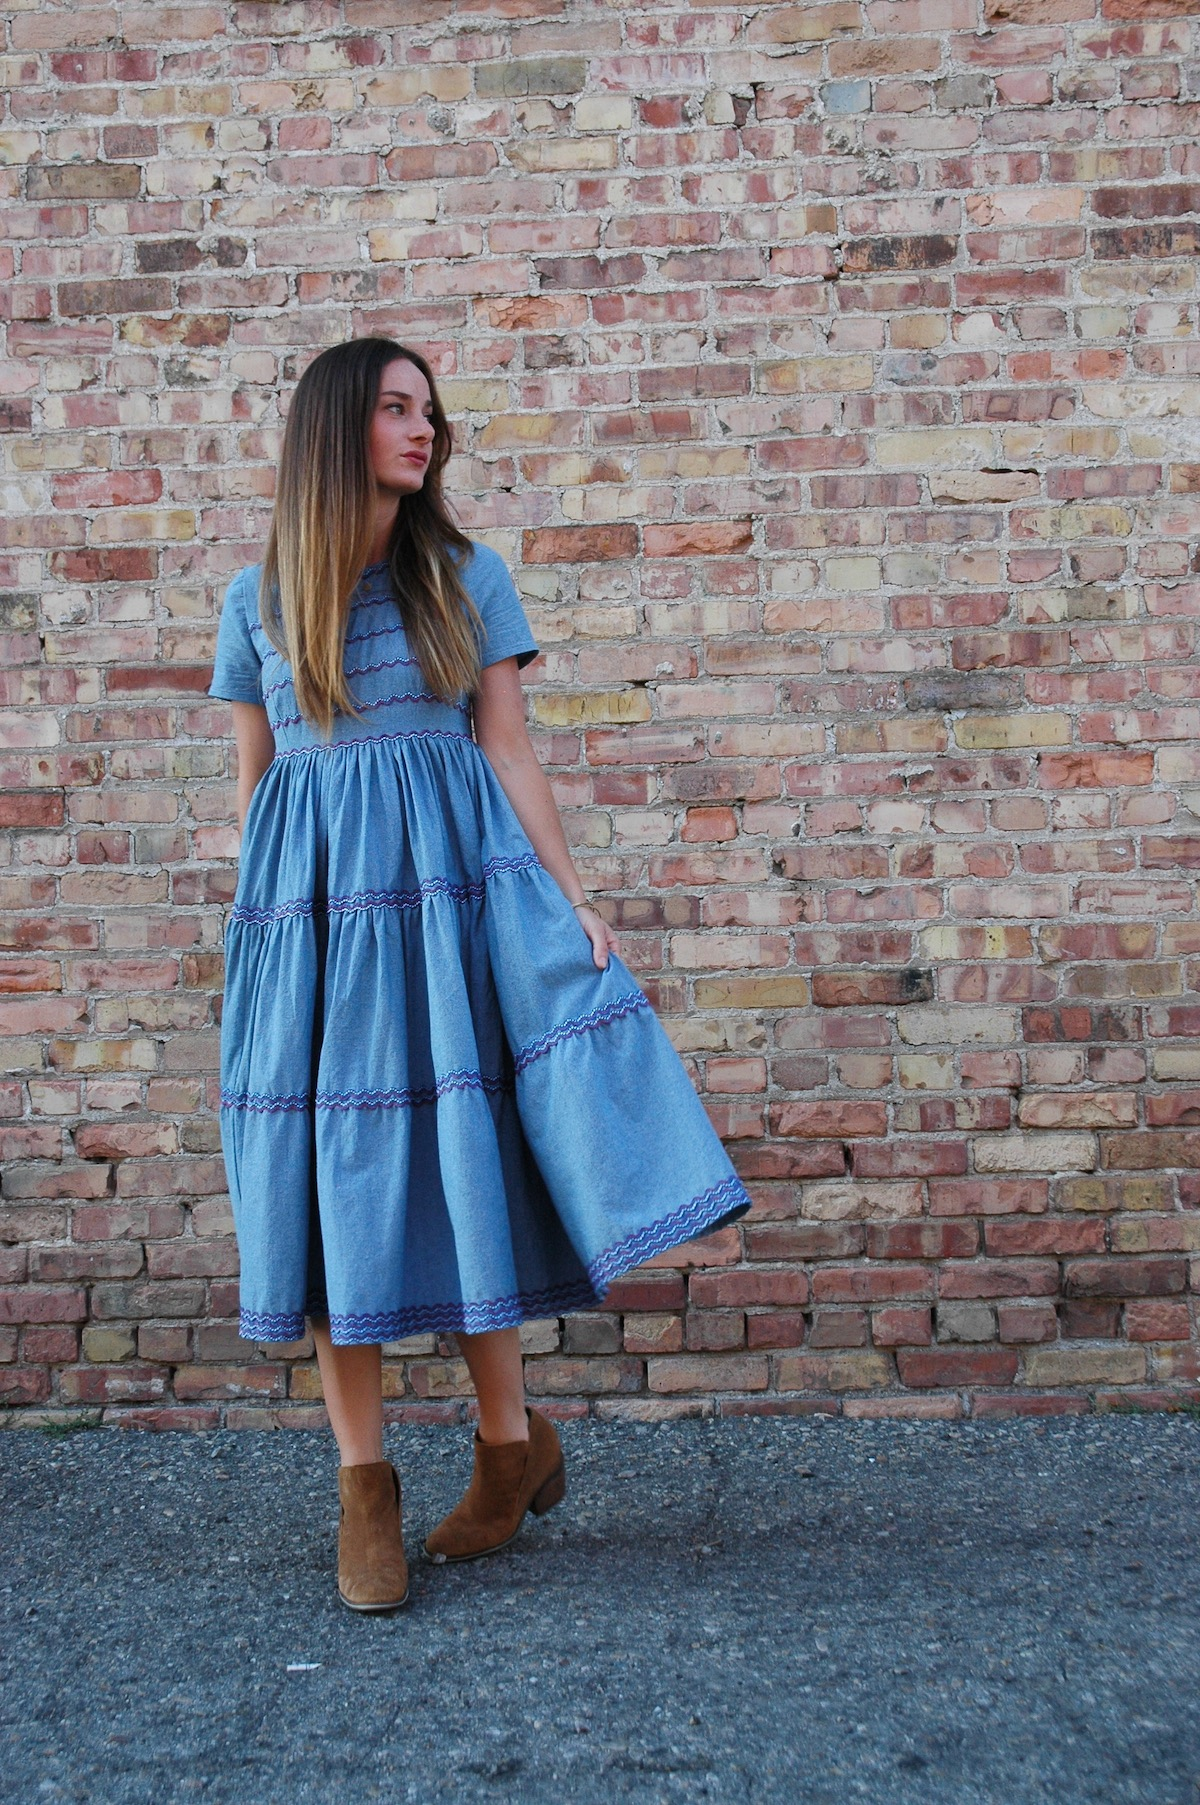 How To Sew A Tiered Dress With Trim Weallsew